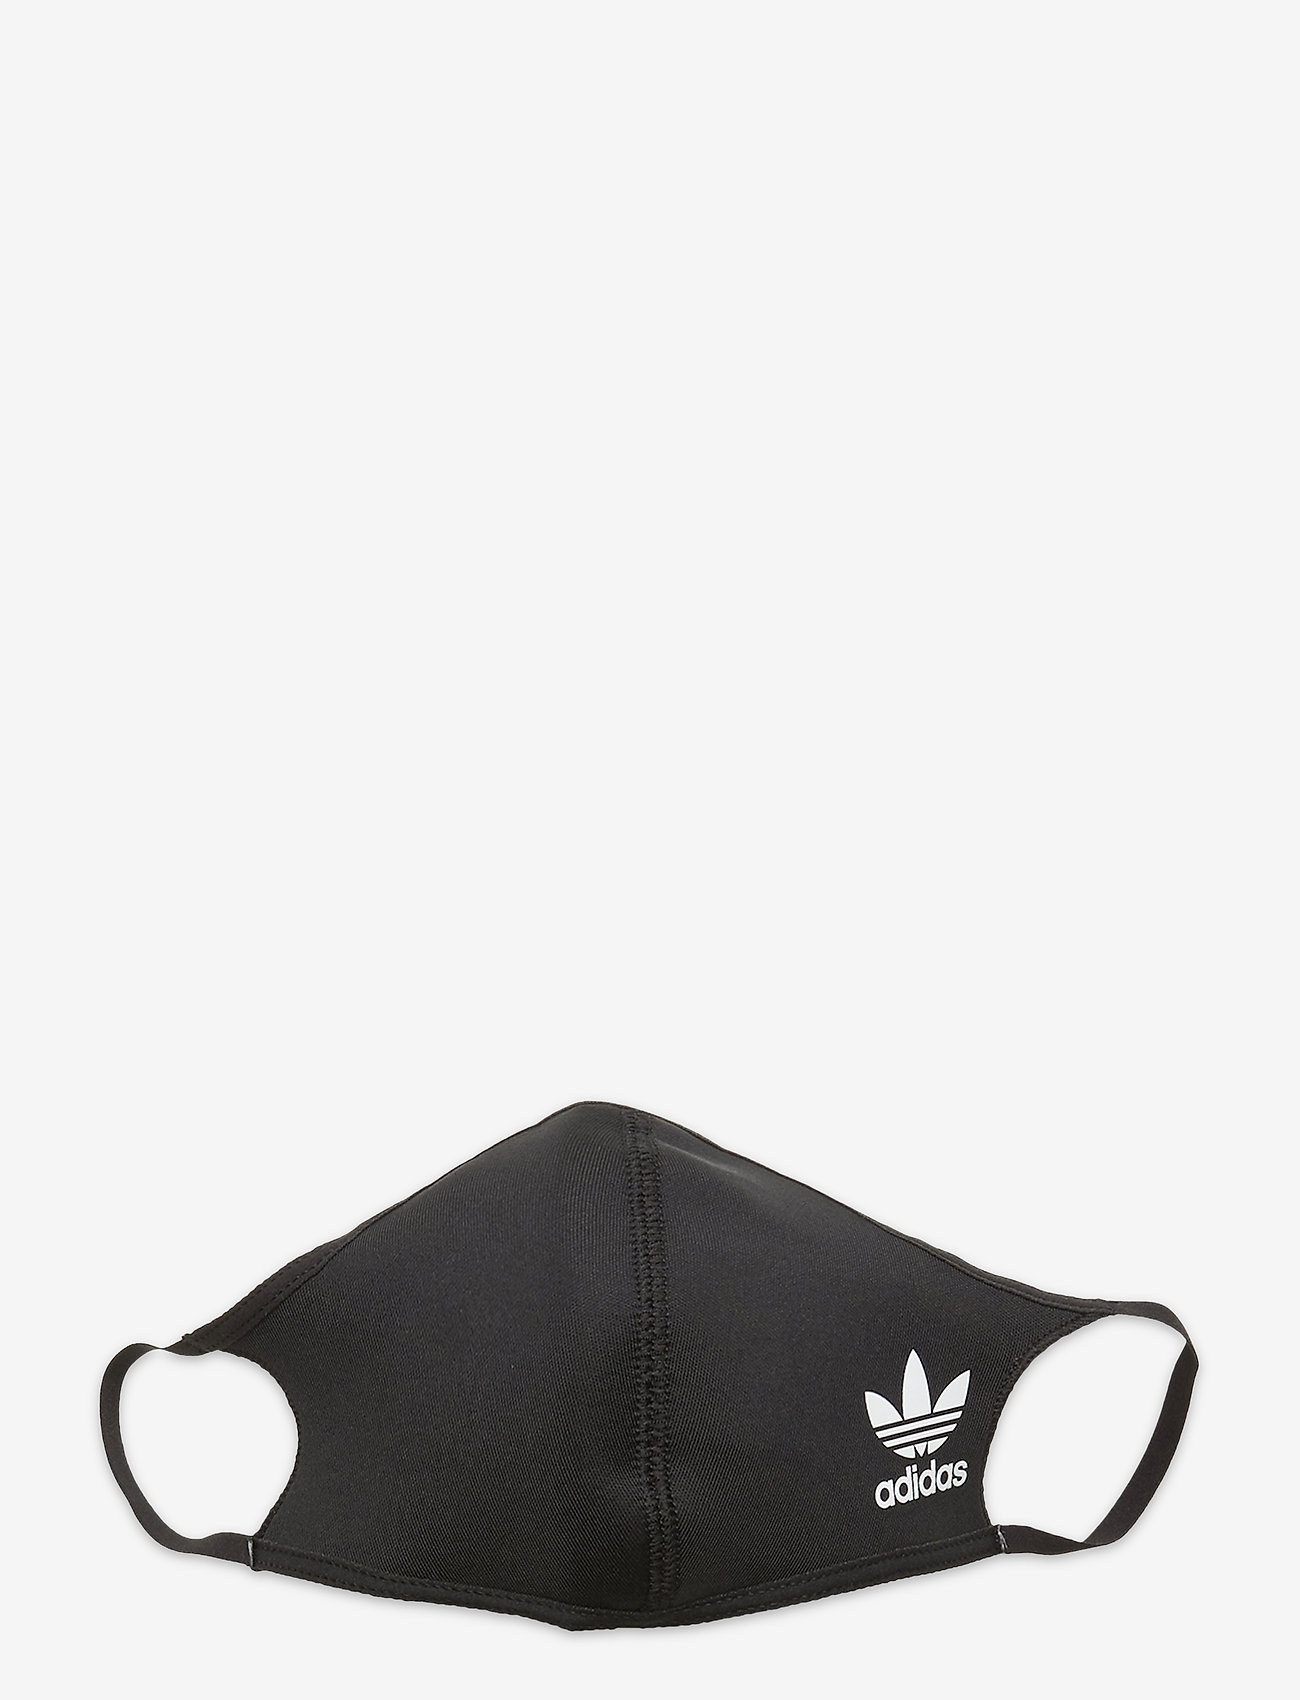 adidas Performance - Face Covers 3-Pack XS/S - Not For Medical Use - gezicht maskers - black/white - 1